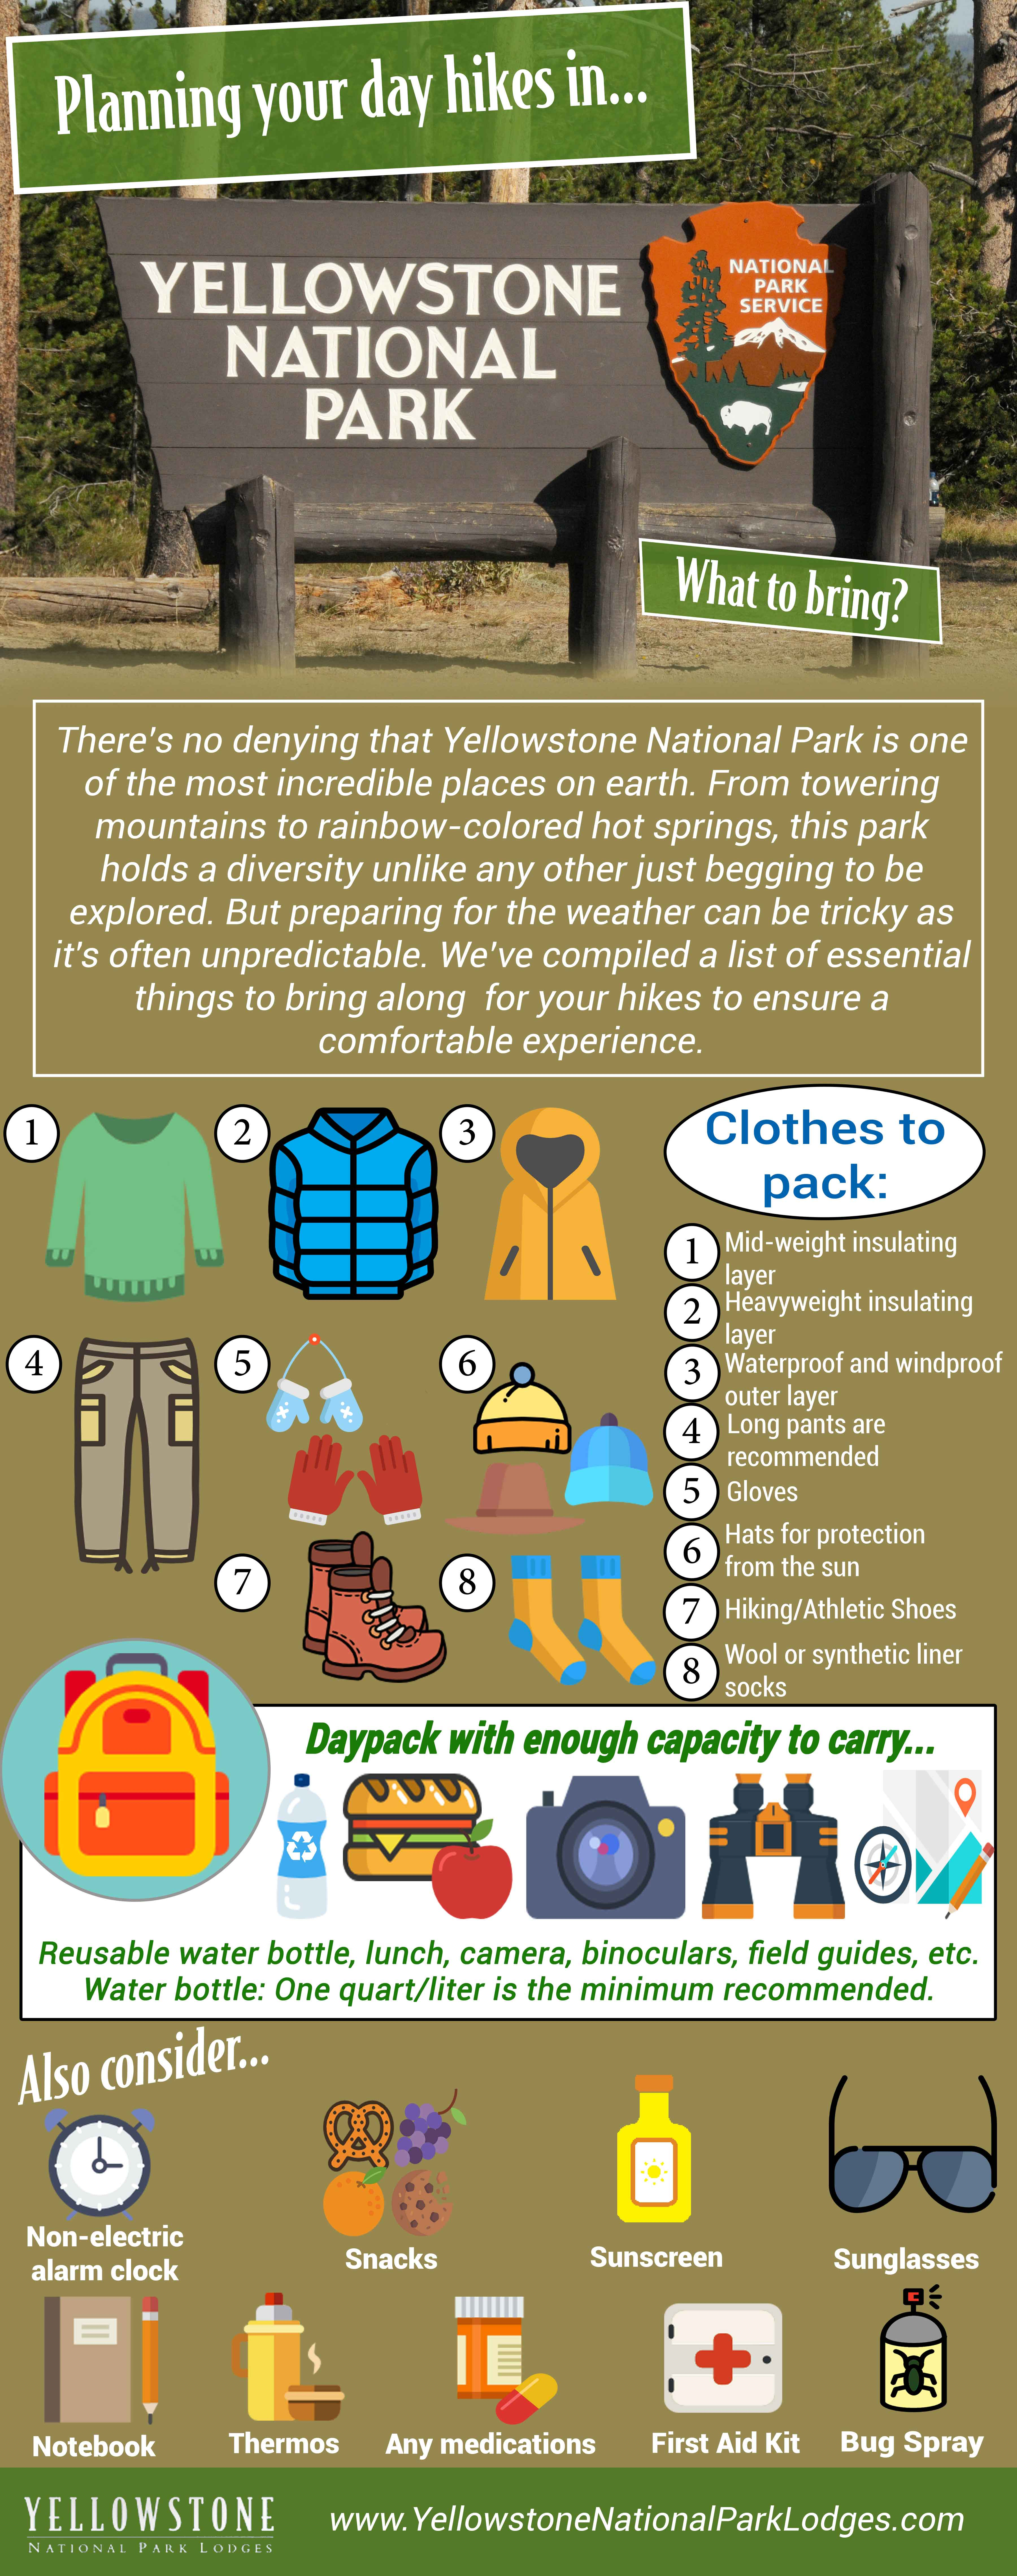 Day hike checklist infographic